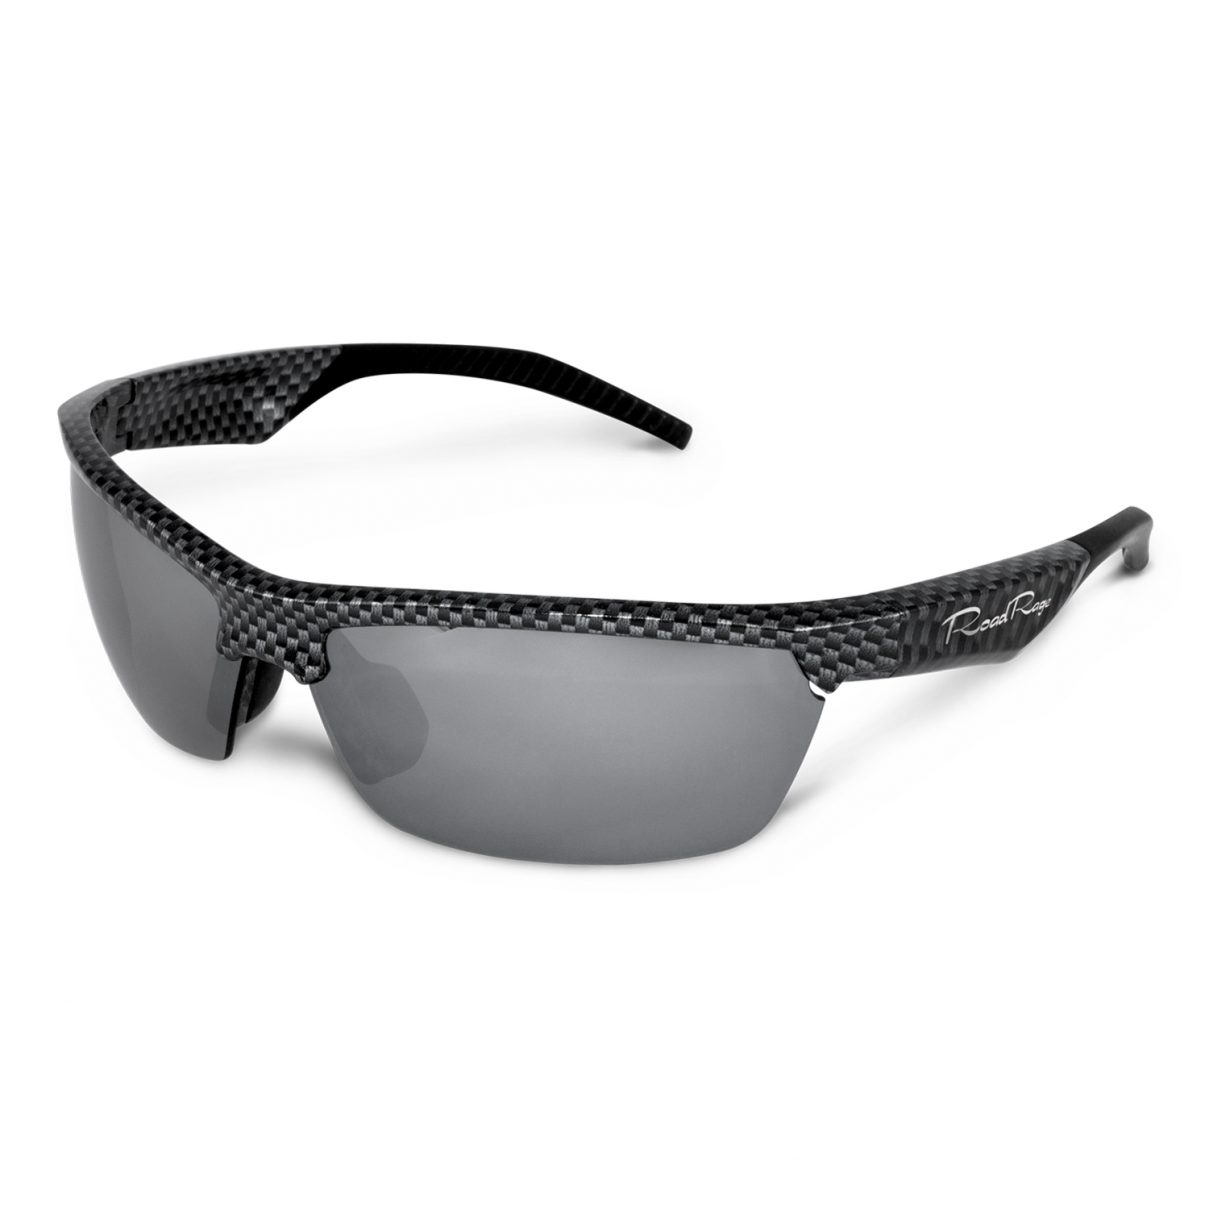 Ultron Sunglasses Bulk Supplier